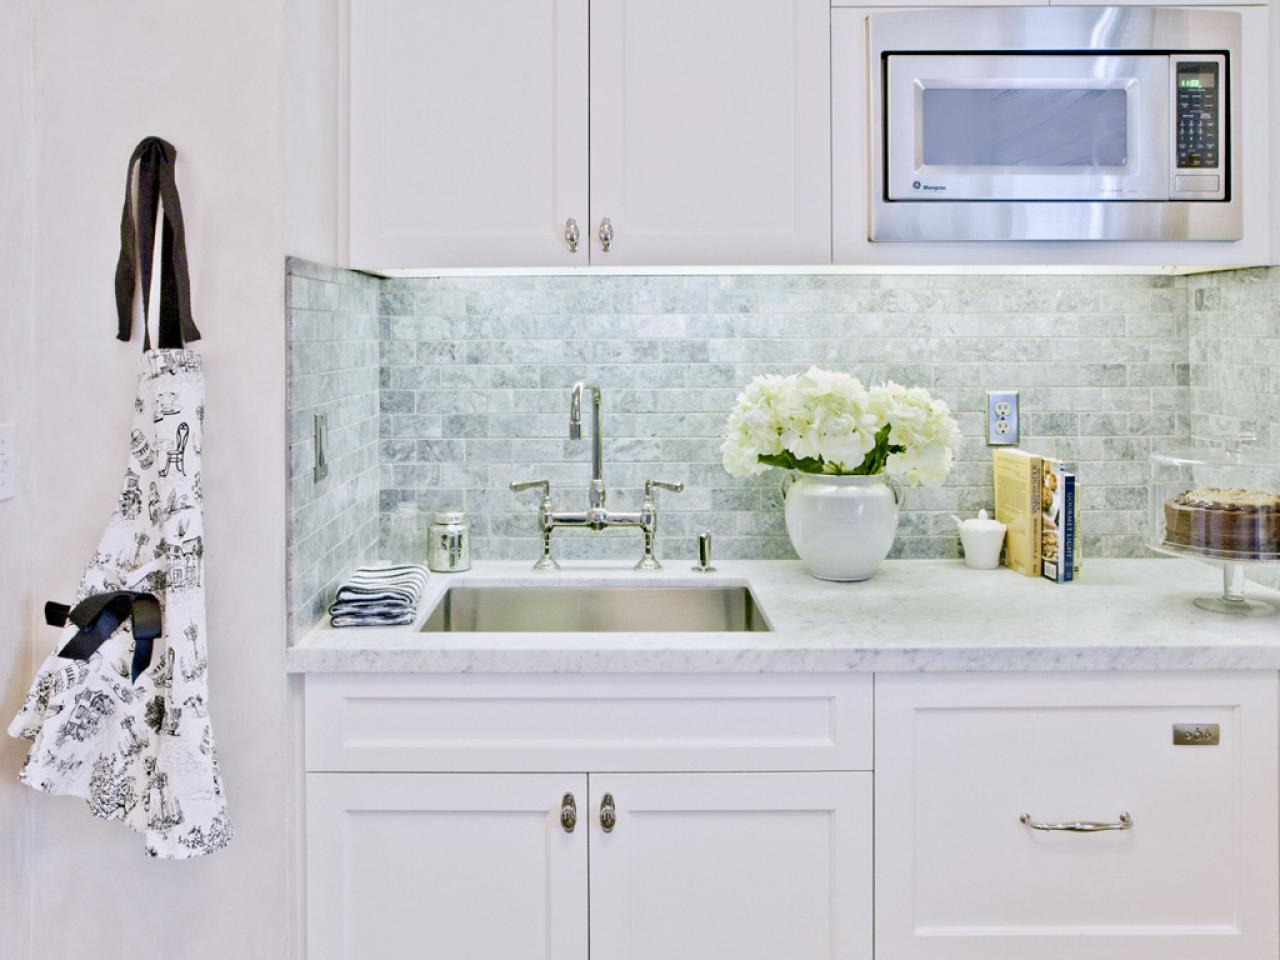 Subway tile backsplashes pictures ideas tips from hgtv Backsplash photos kitchen ideas